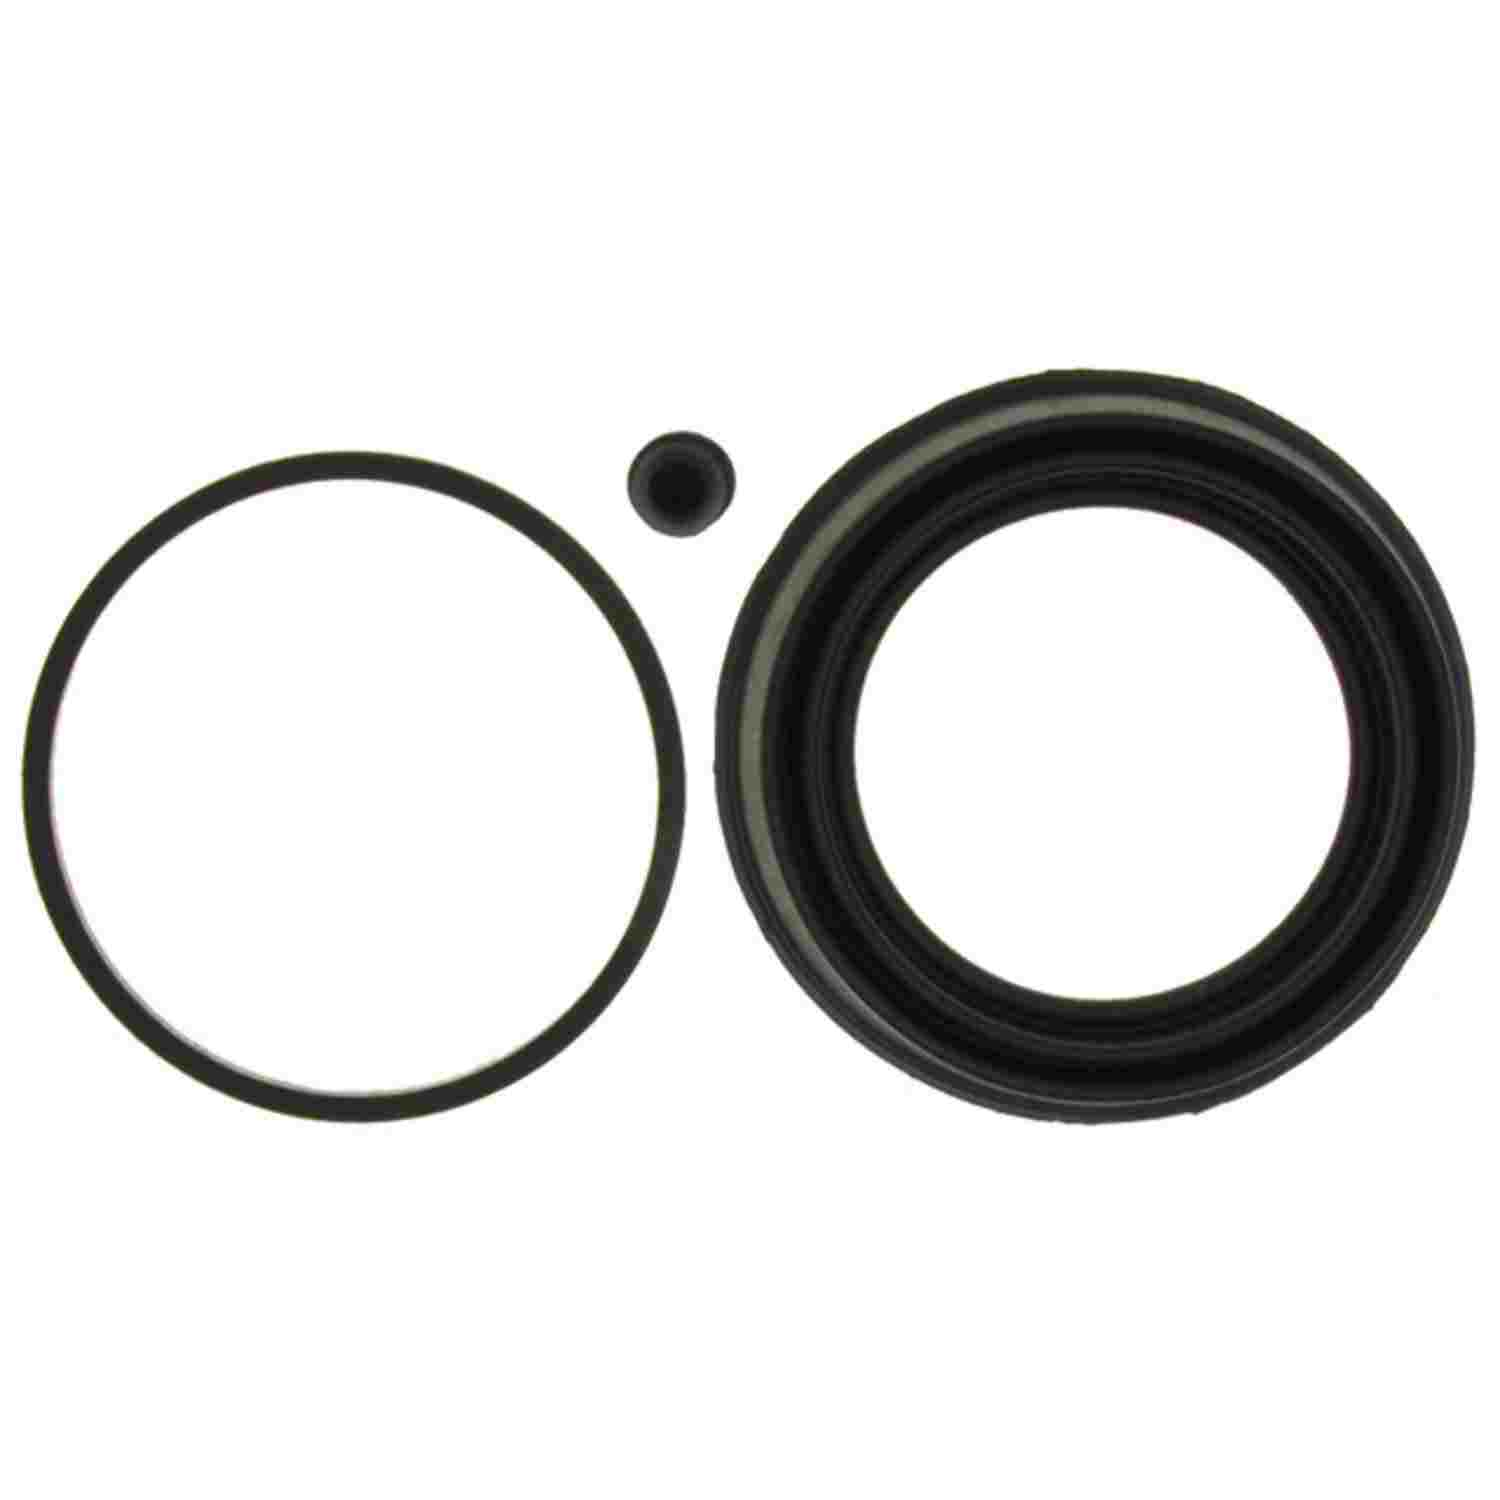 ACDELCO GOLD/PROFESSIONAL BRAKES - Disc Brake Caliper Seal Kit (Front) - ADU 18H1244